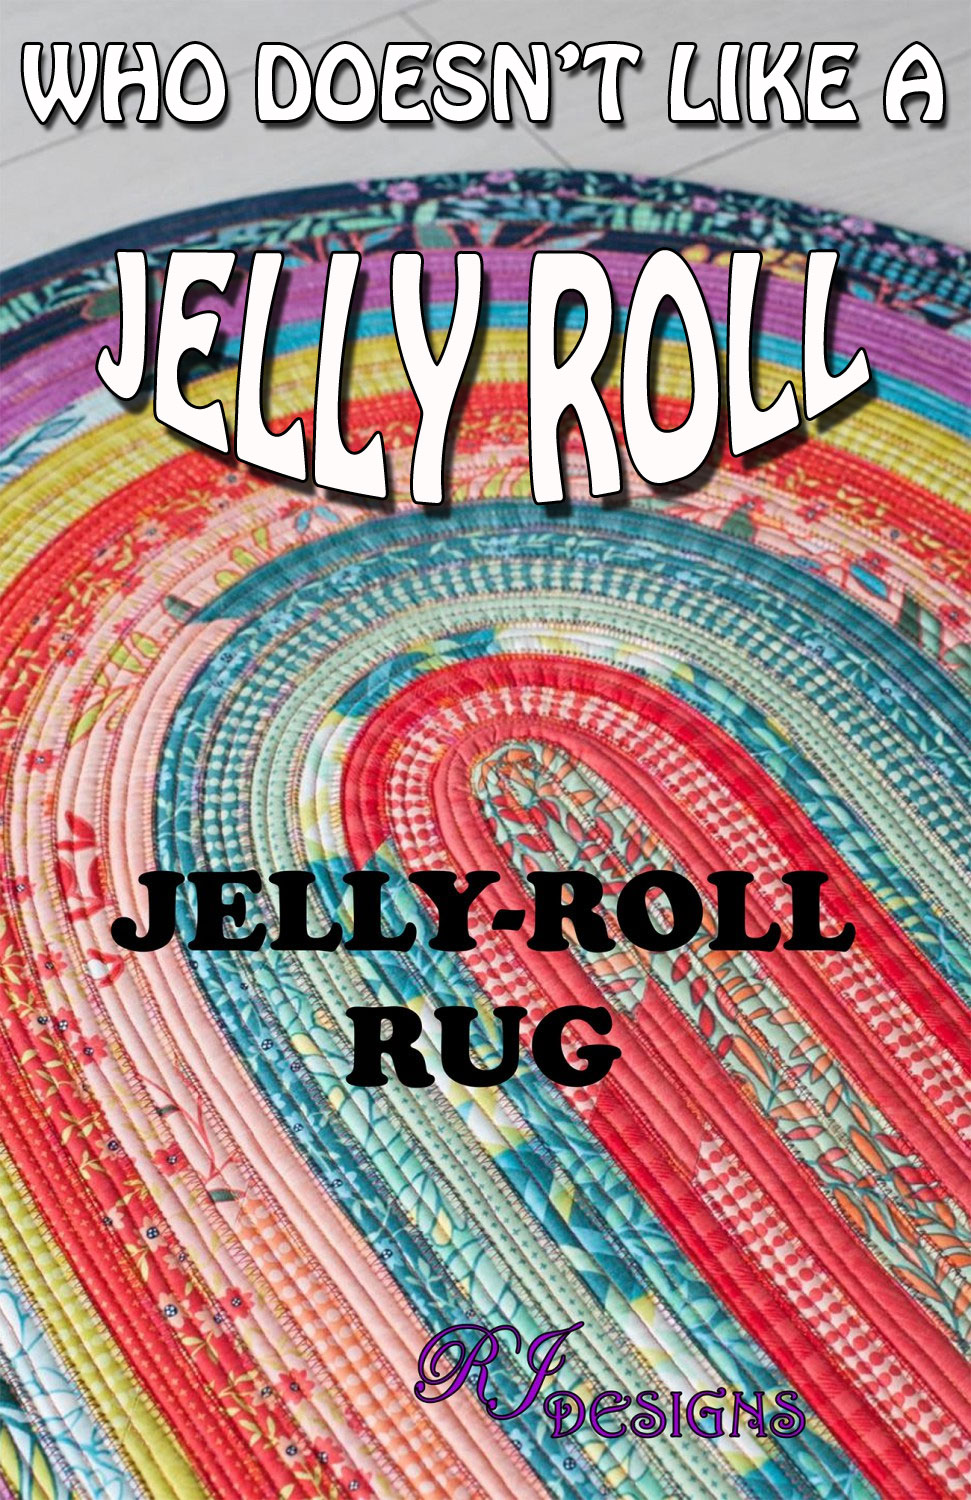 Jelly-Roll-Rug-sewing-pattern-from-RJ-designs-5